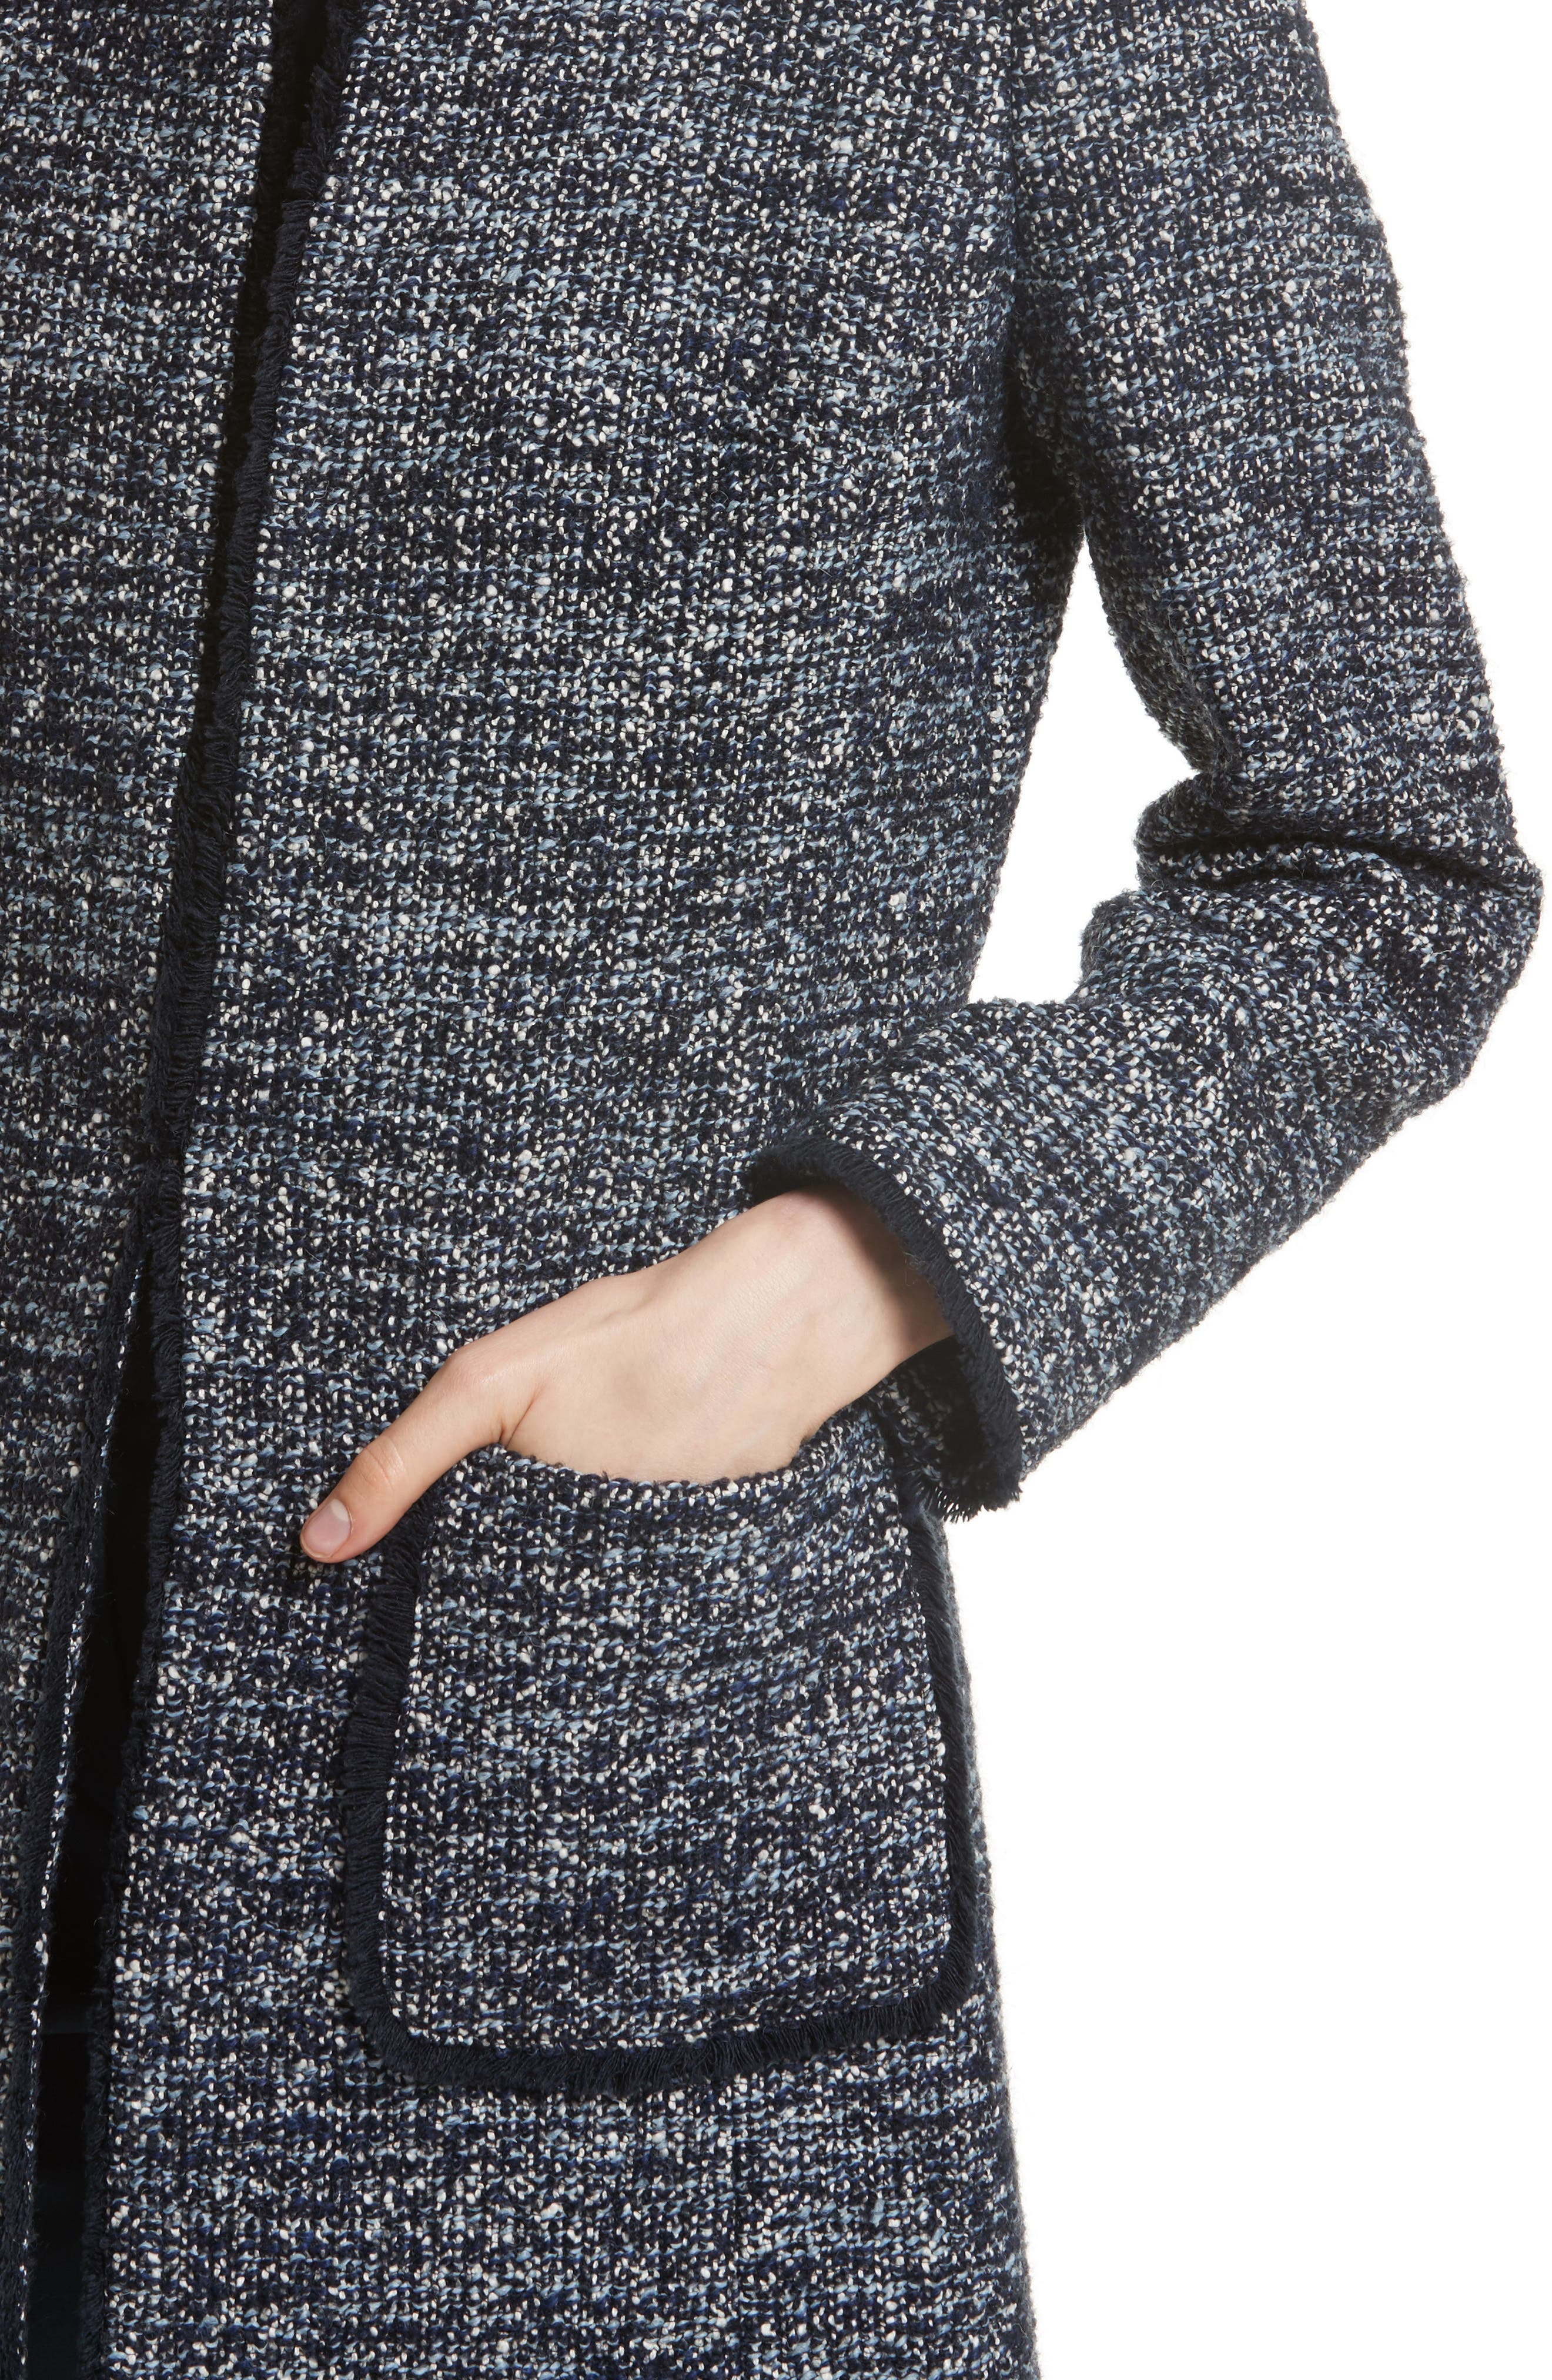 Alice Tweed Jacket,                             Alternate thumbnail 4, color,                             Navy/ Pale Blue